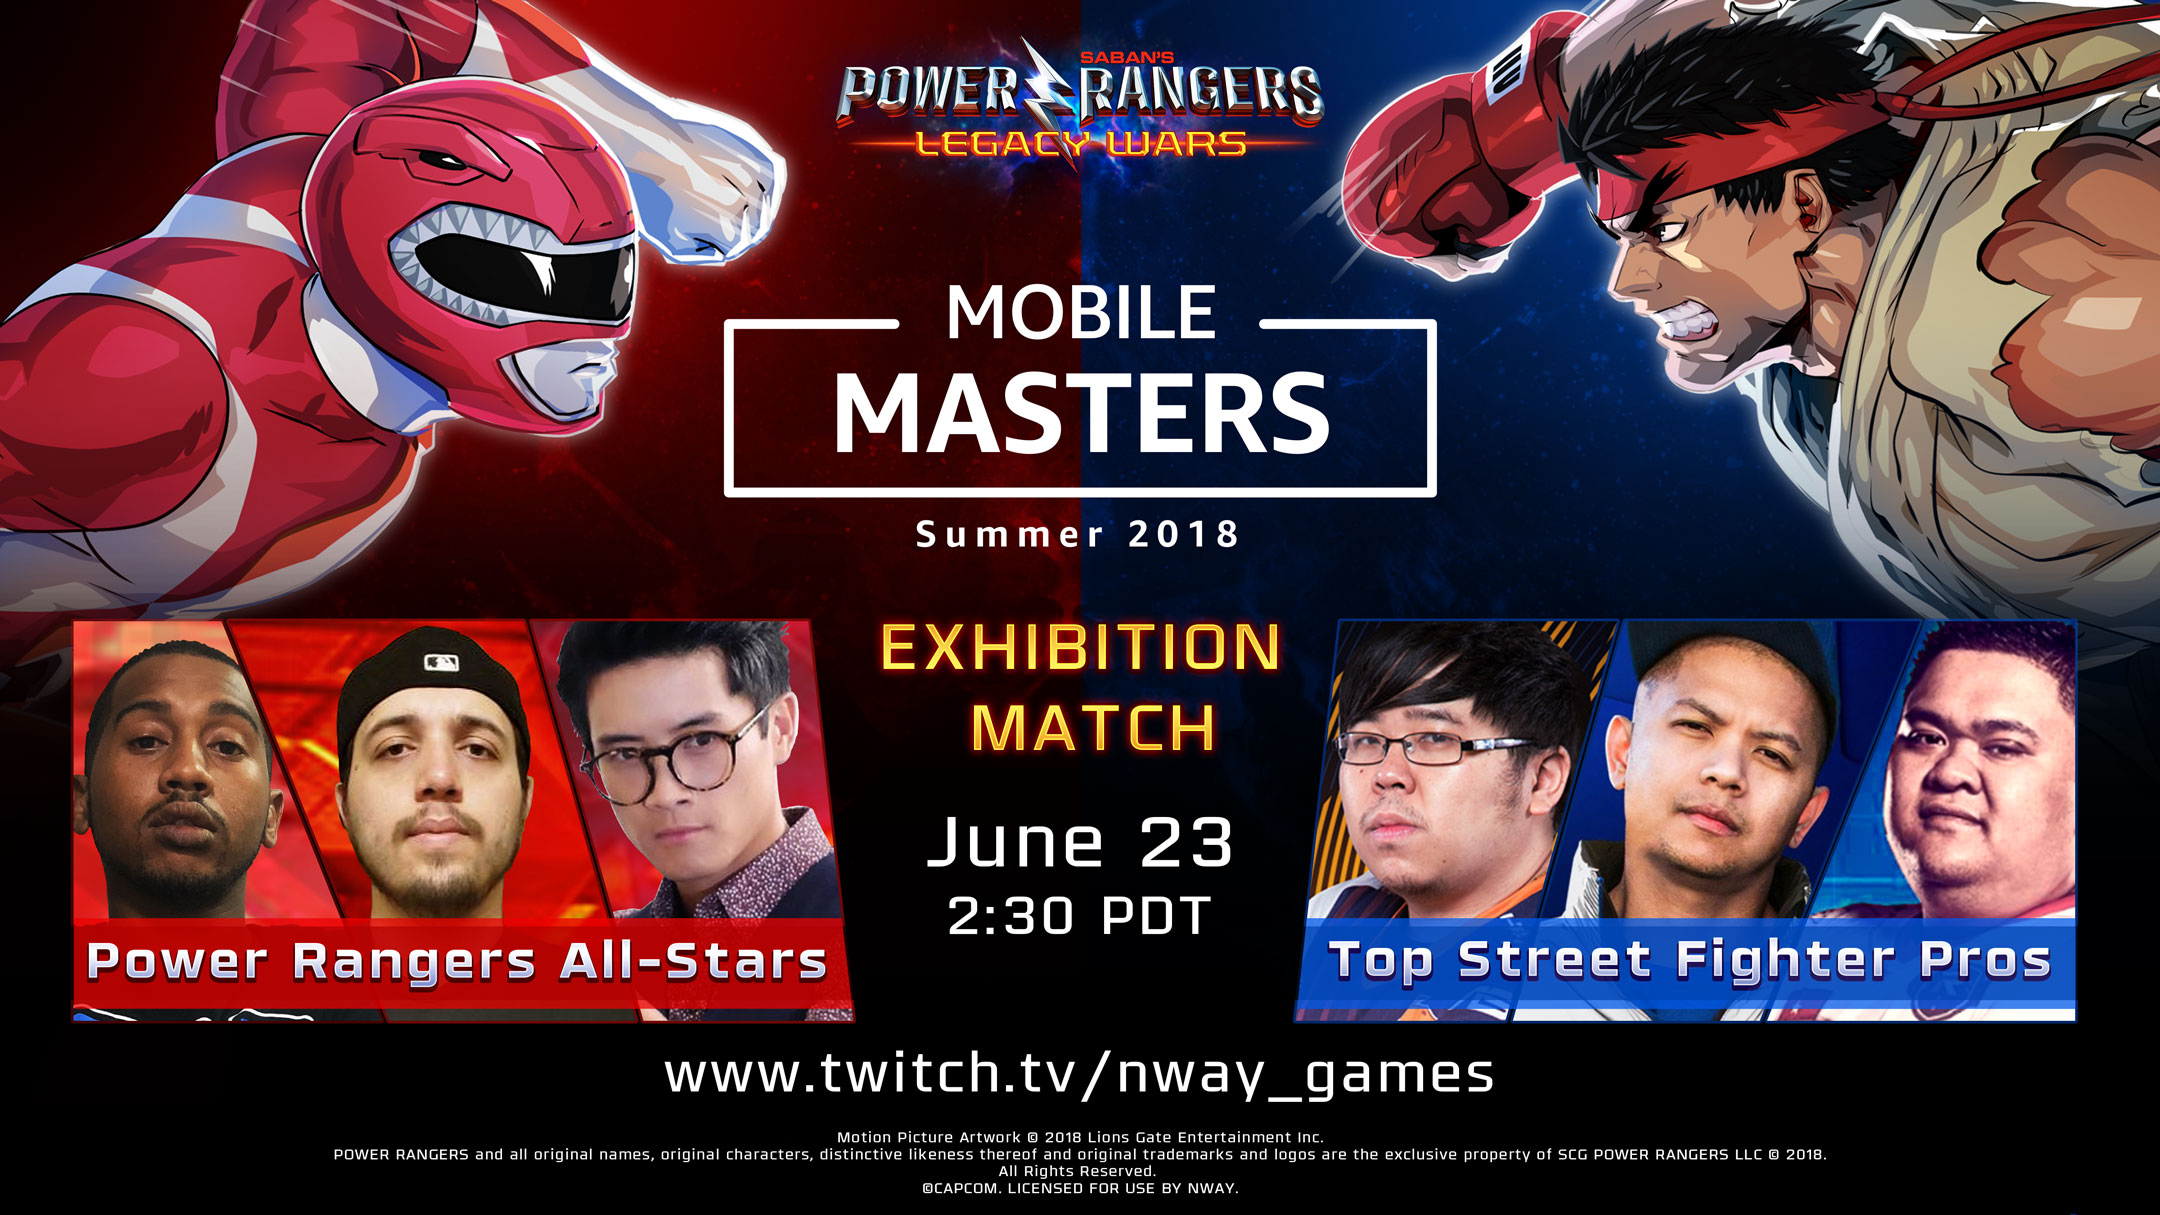 Street Fighter And Power Rangers Pros Face Off In Amazon S Mobile Masters Gamingph Com